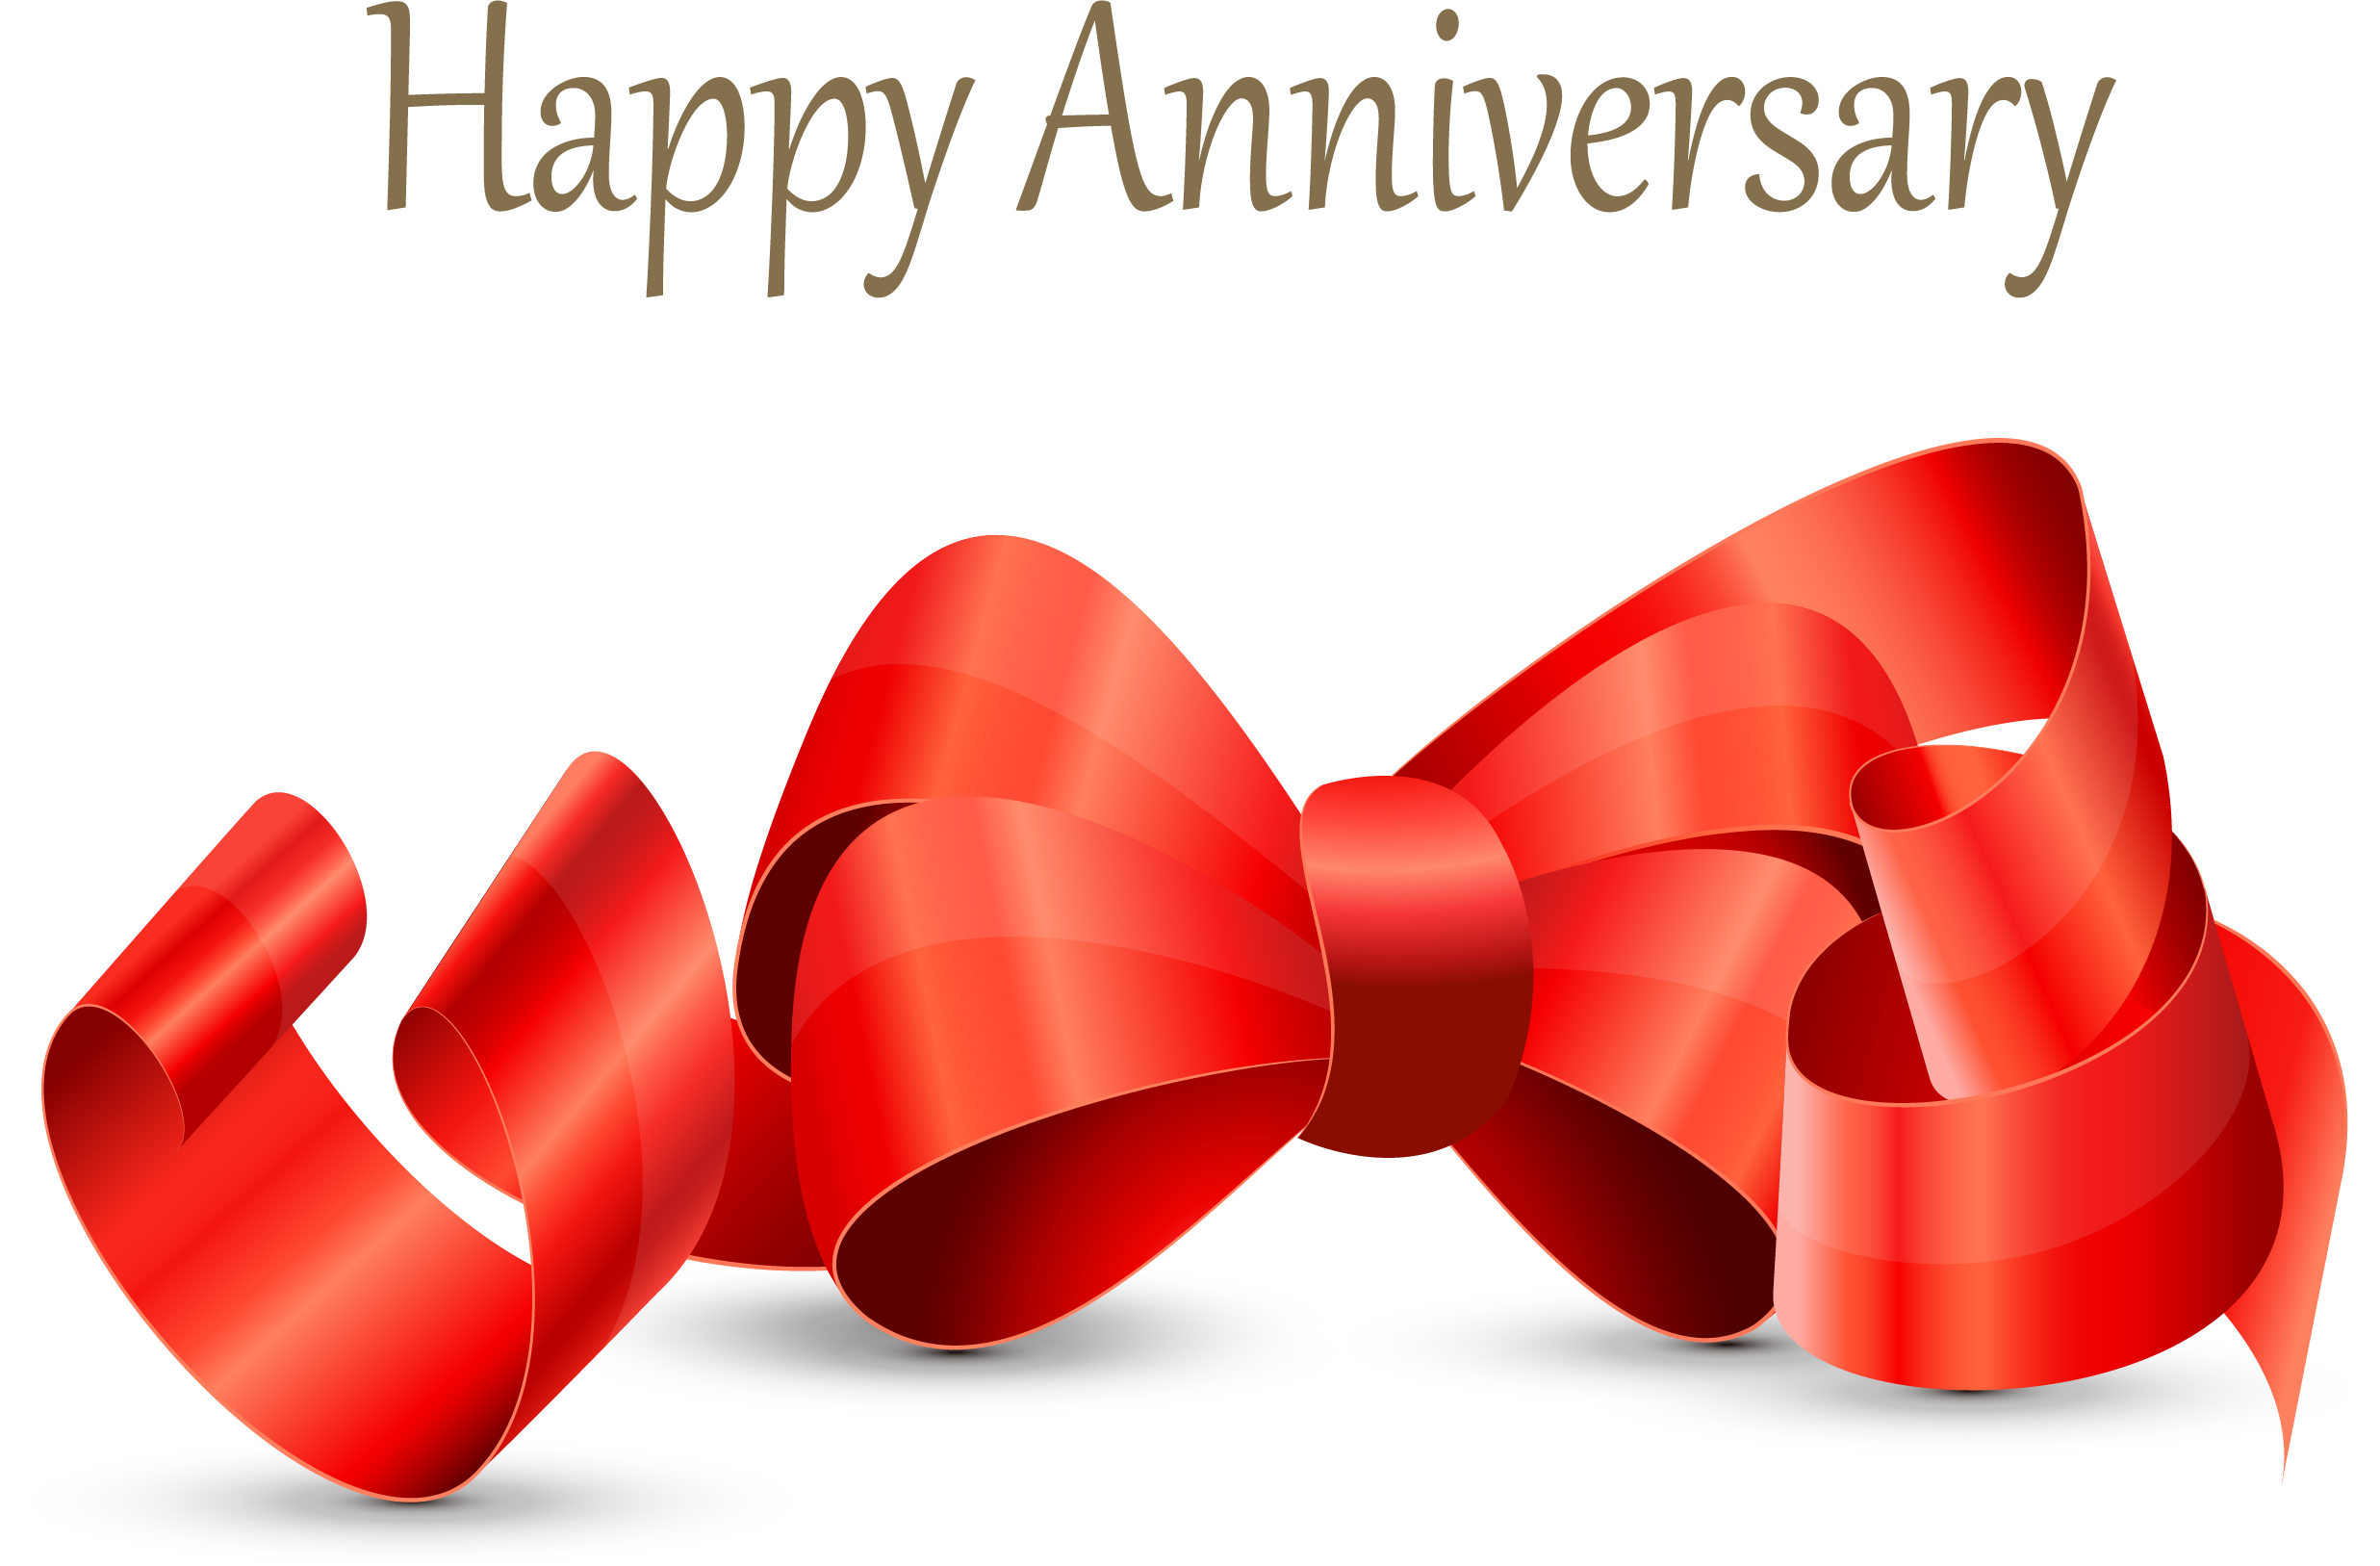 Happy anniversary facebook clipart picture black and white library Wedding anniversary Birthday - Red ribbon bow anniversary creative ... picture black and white library